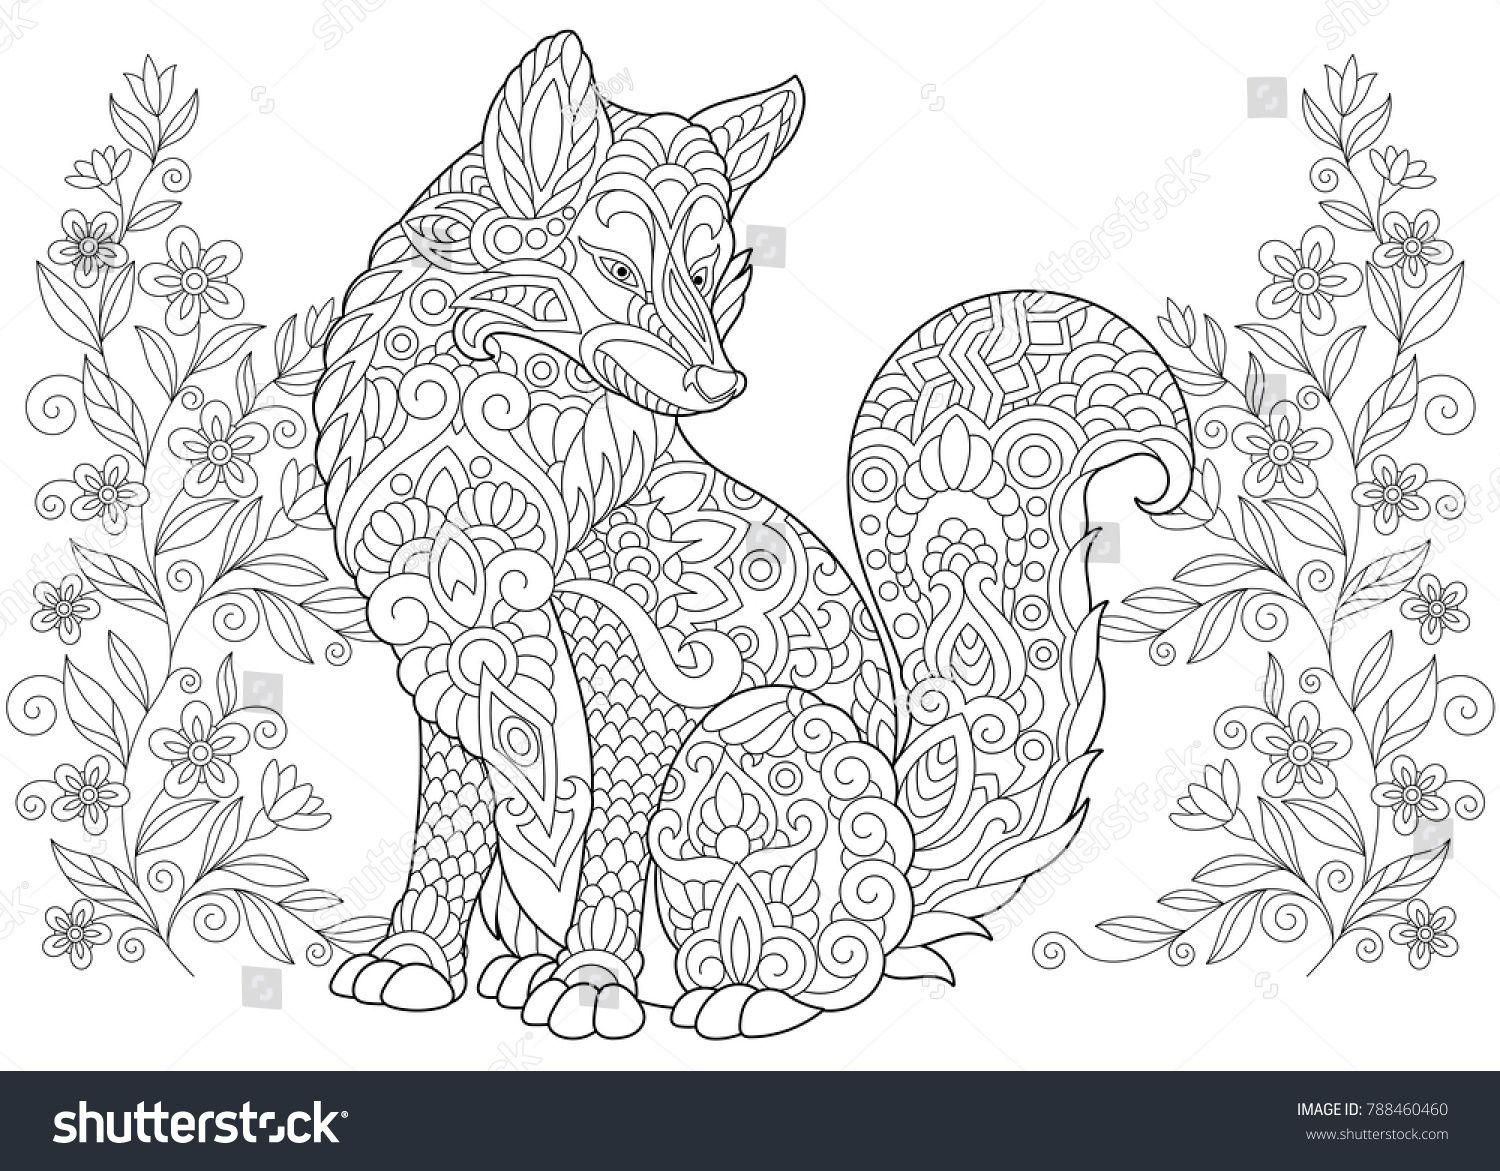 Coloring Page Adult Coloring Book Wild Fox And Summer Or Spring